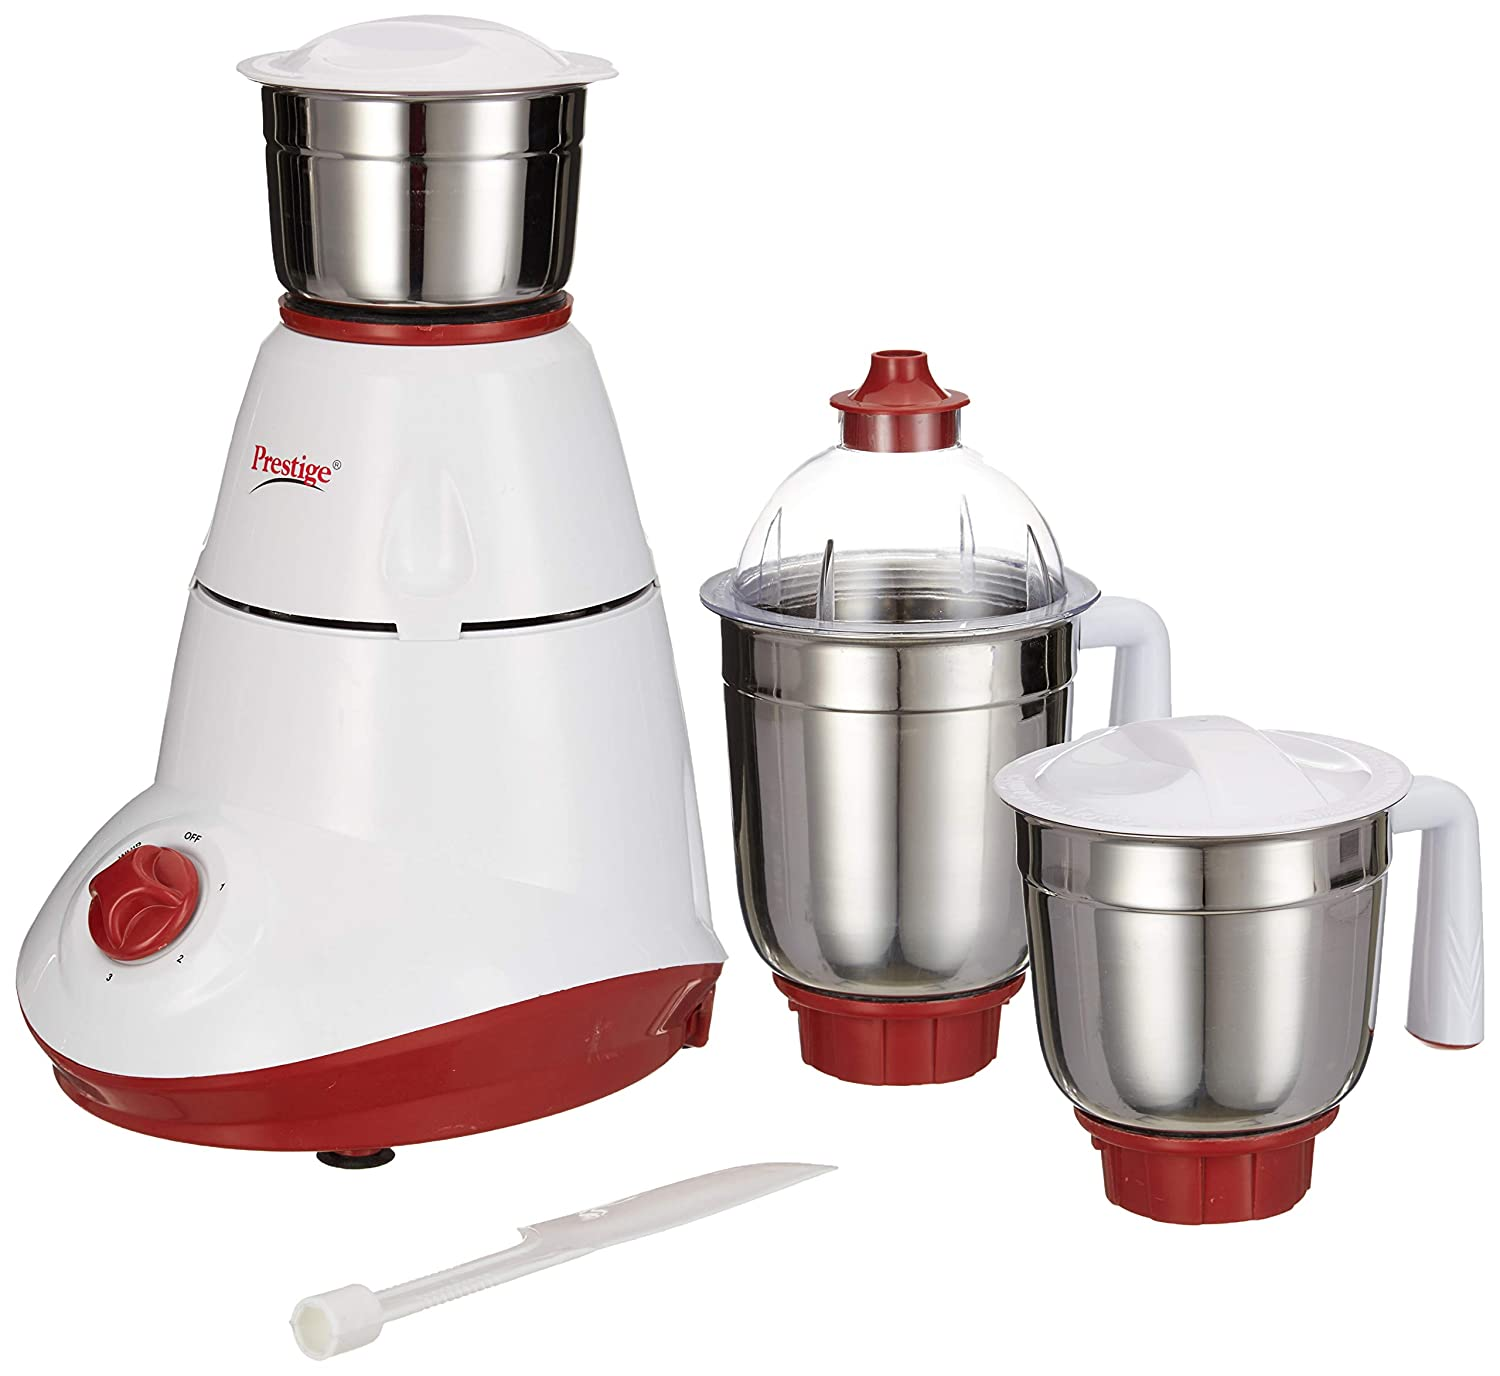 Prestige Star 750-Watt Mixer Grinder with 3 Jars (White)